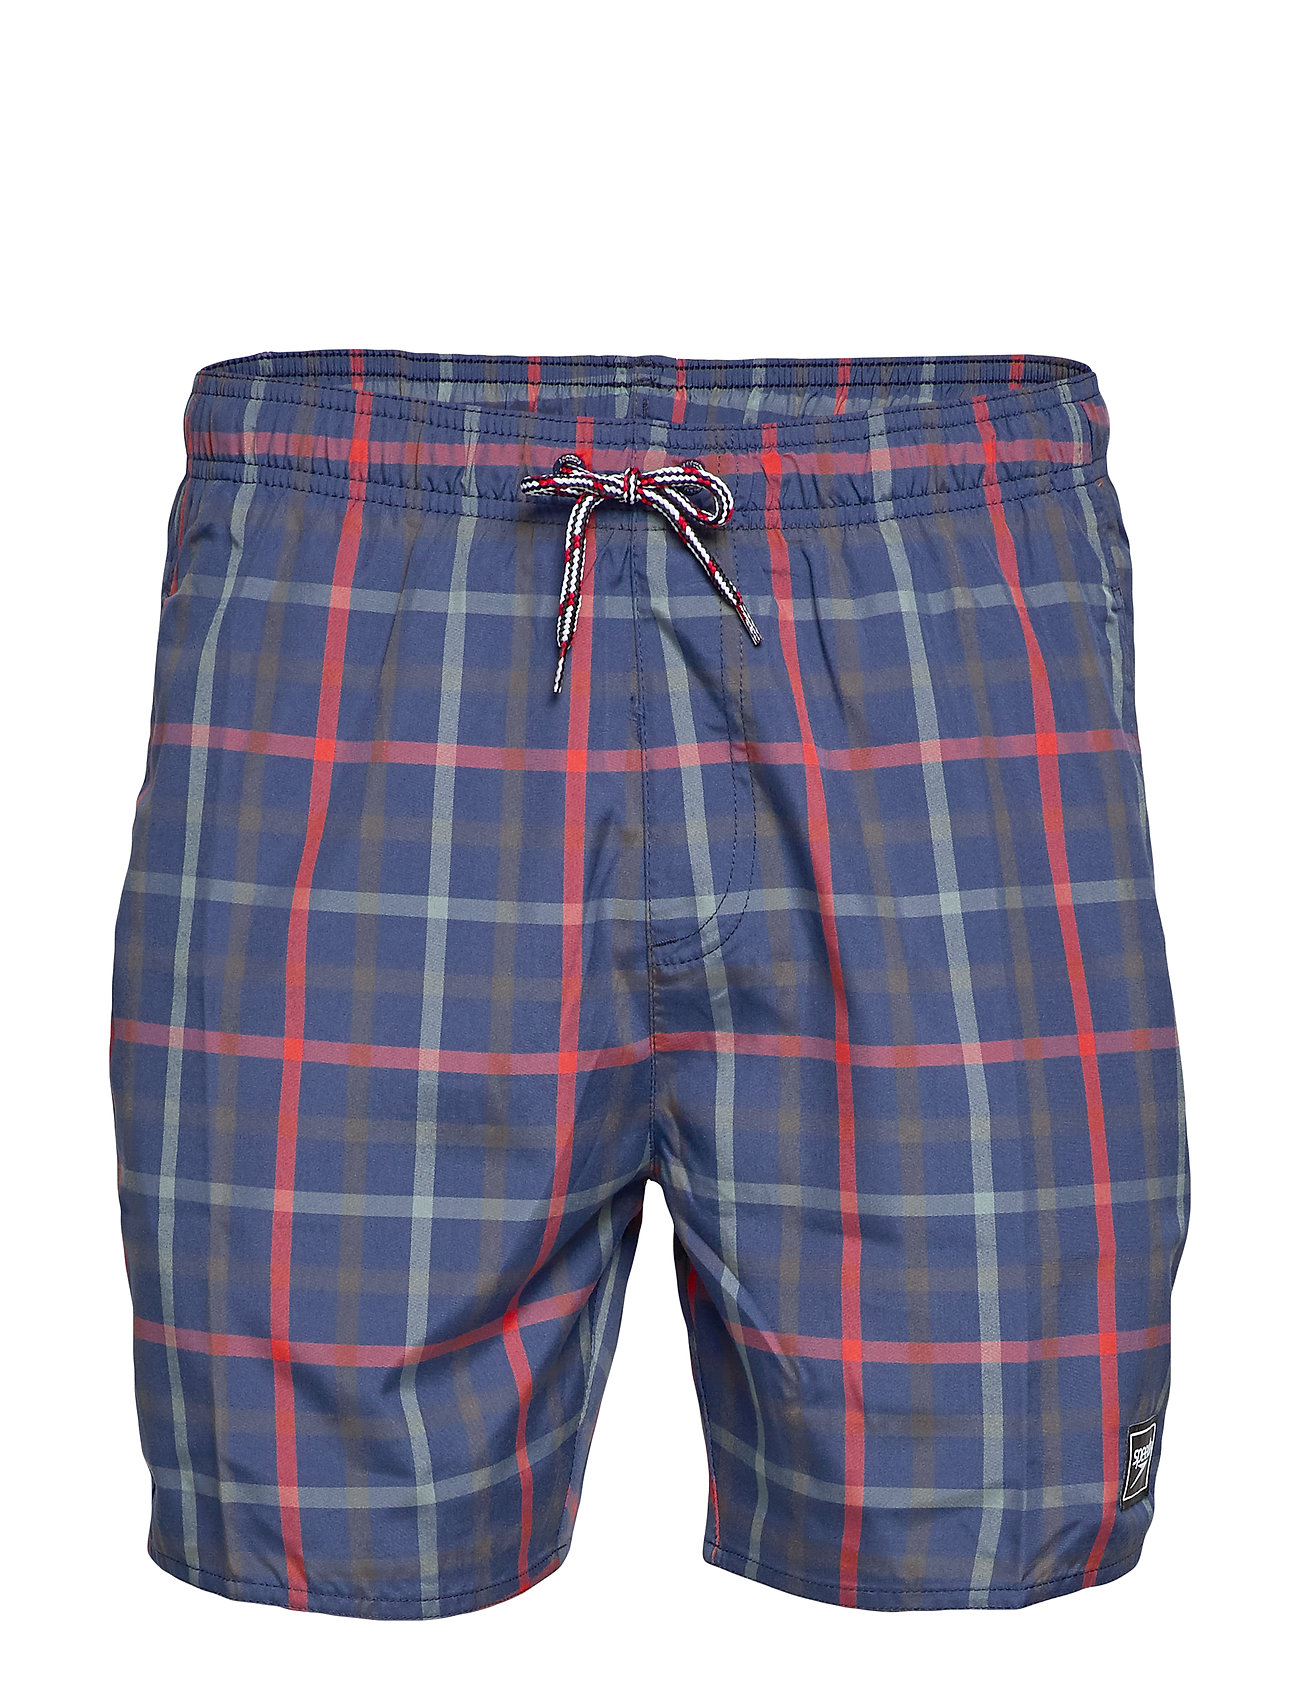 Image of Check Leisure 16 Watershort Badeshorts Blå Speedo (3486571337)